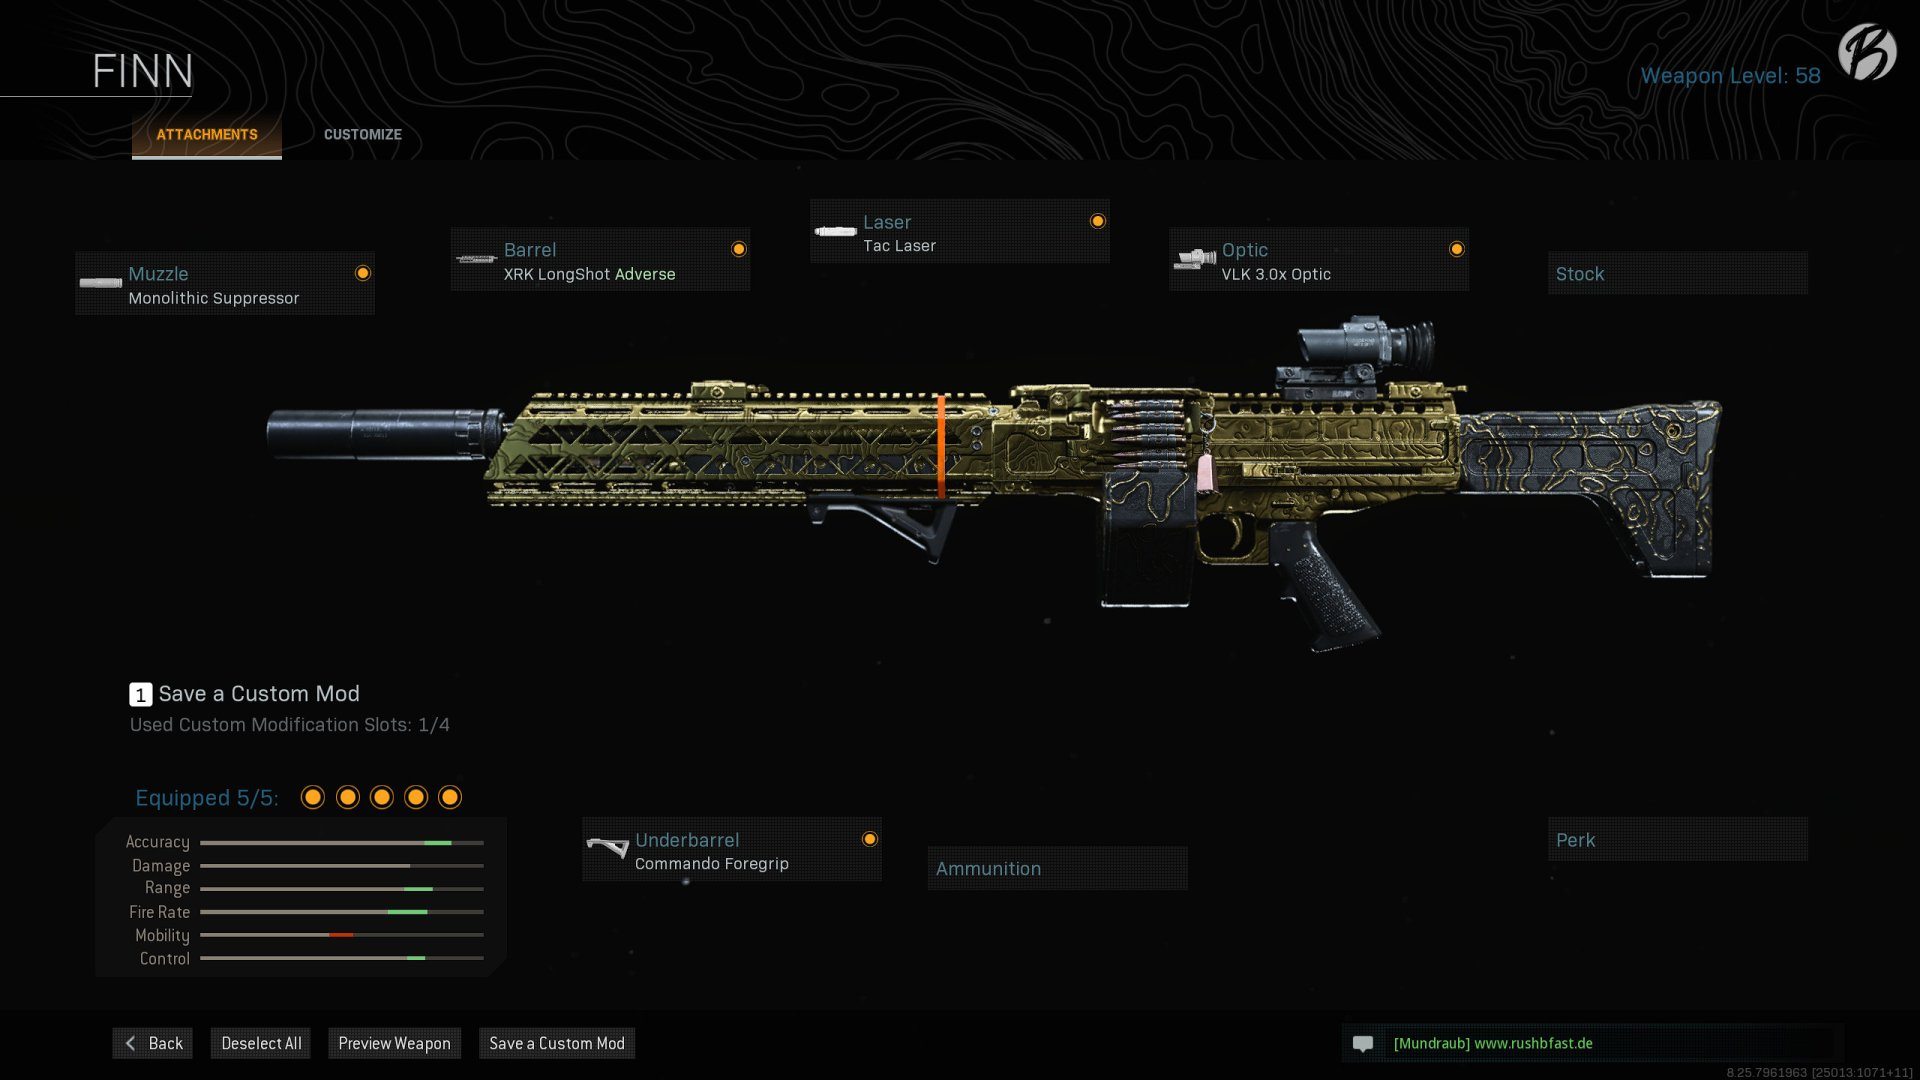 FiNN: Monolithic Suppressor, XRK LongShot Adverse, Tac Laser, VLK 3.0x Optic, Commando Foregrip